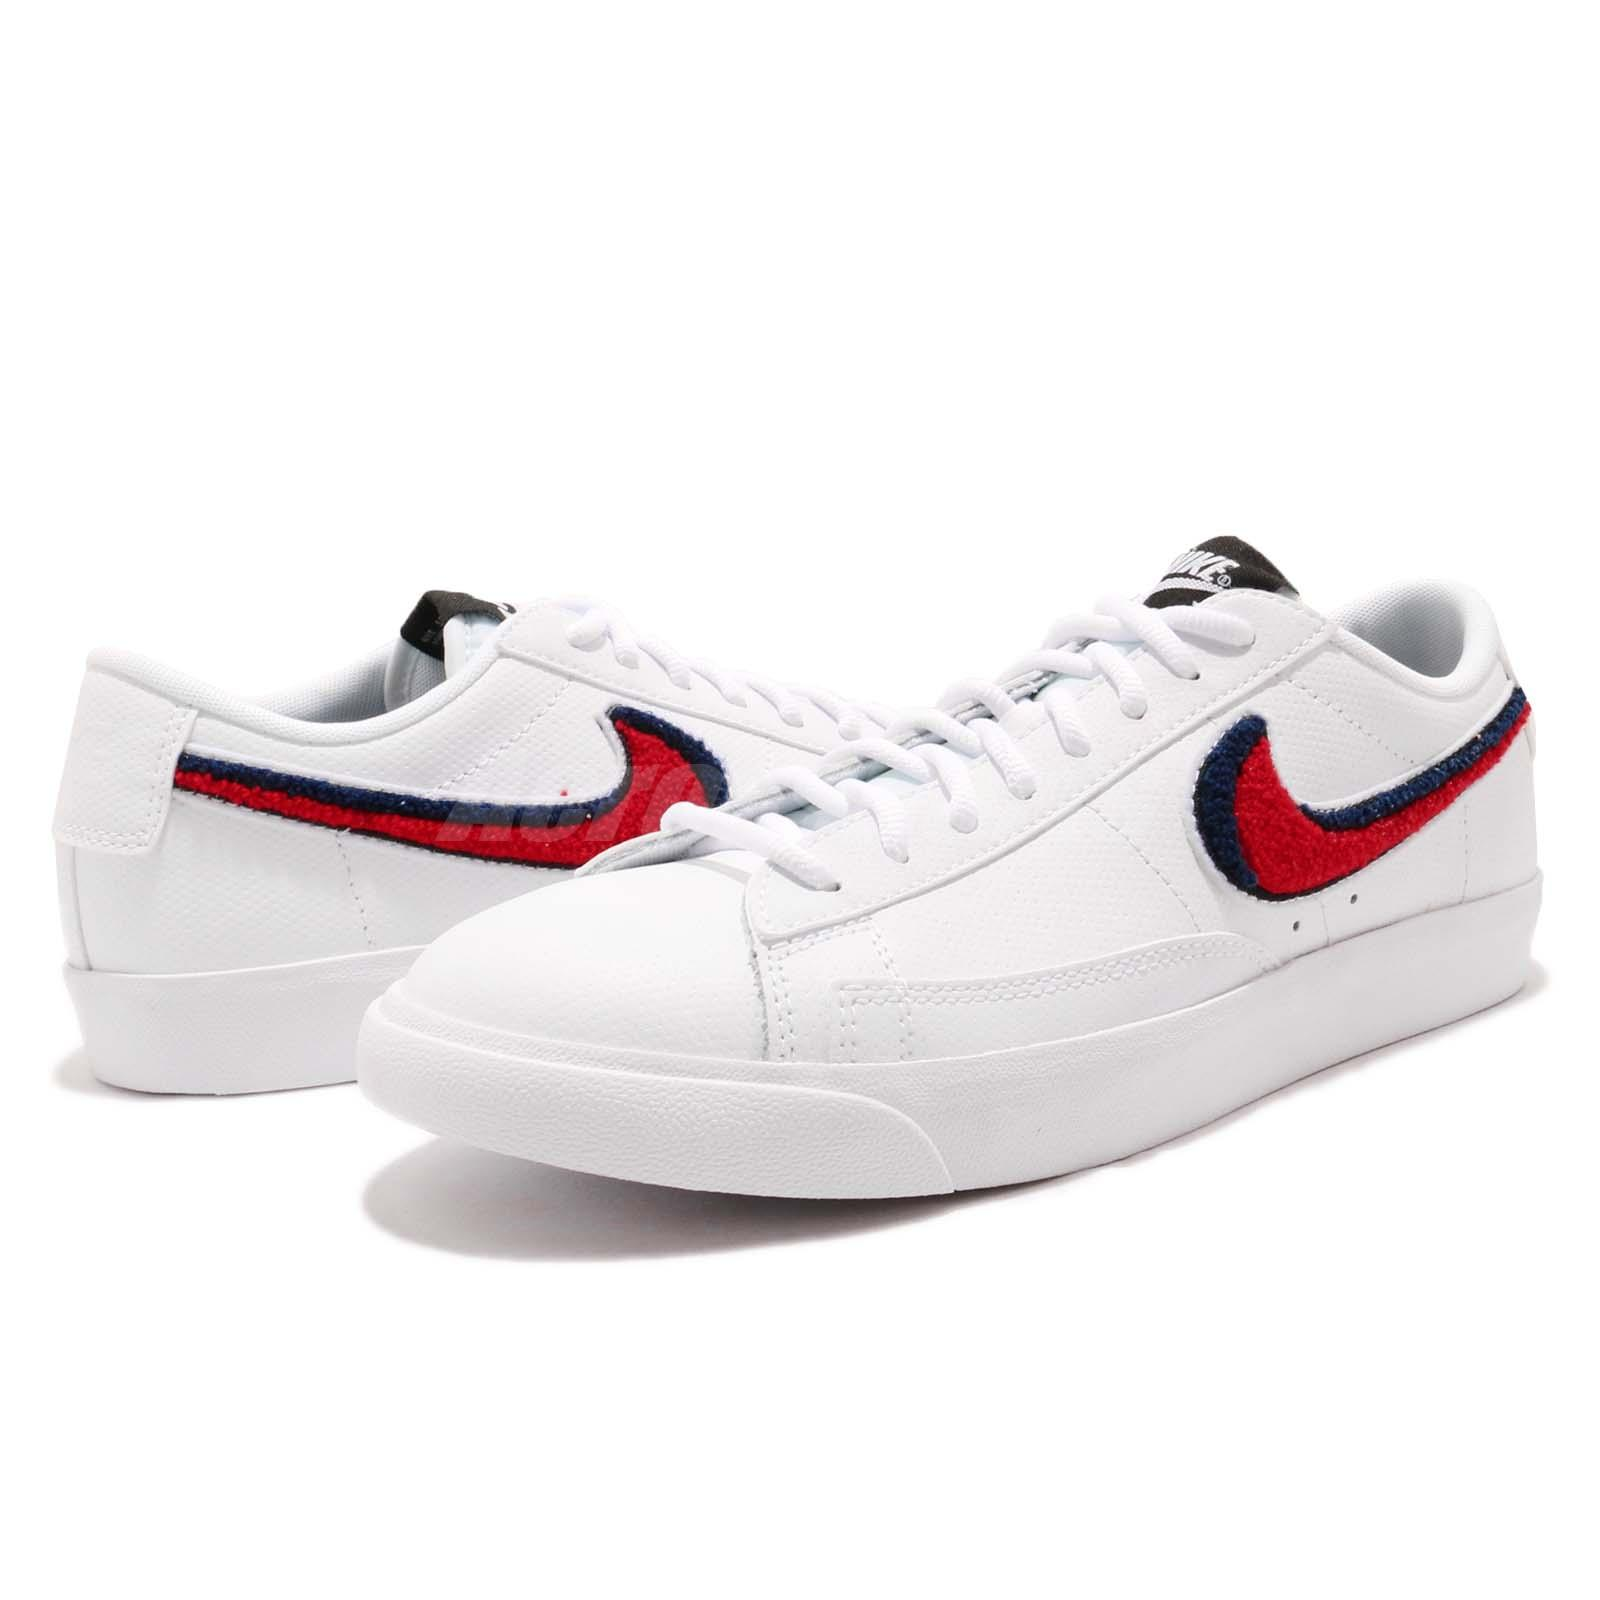 53678ee511a64 Nike Blazer Low 3D White Red Blue Men Casual Lifestyle Shoes ...